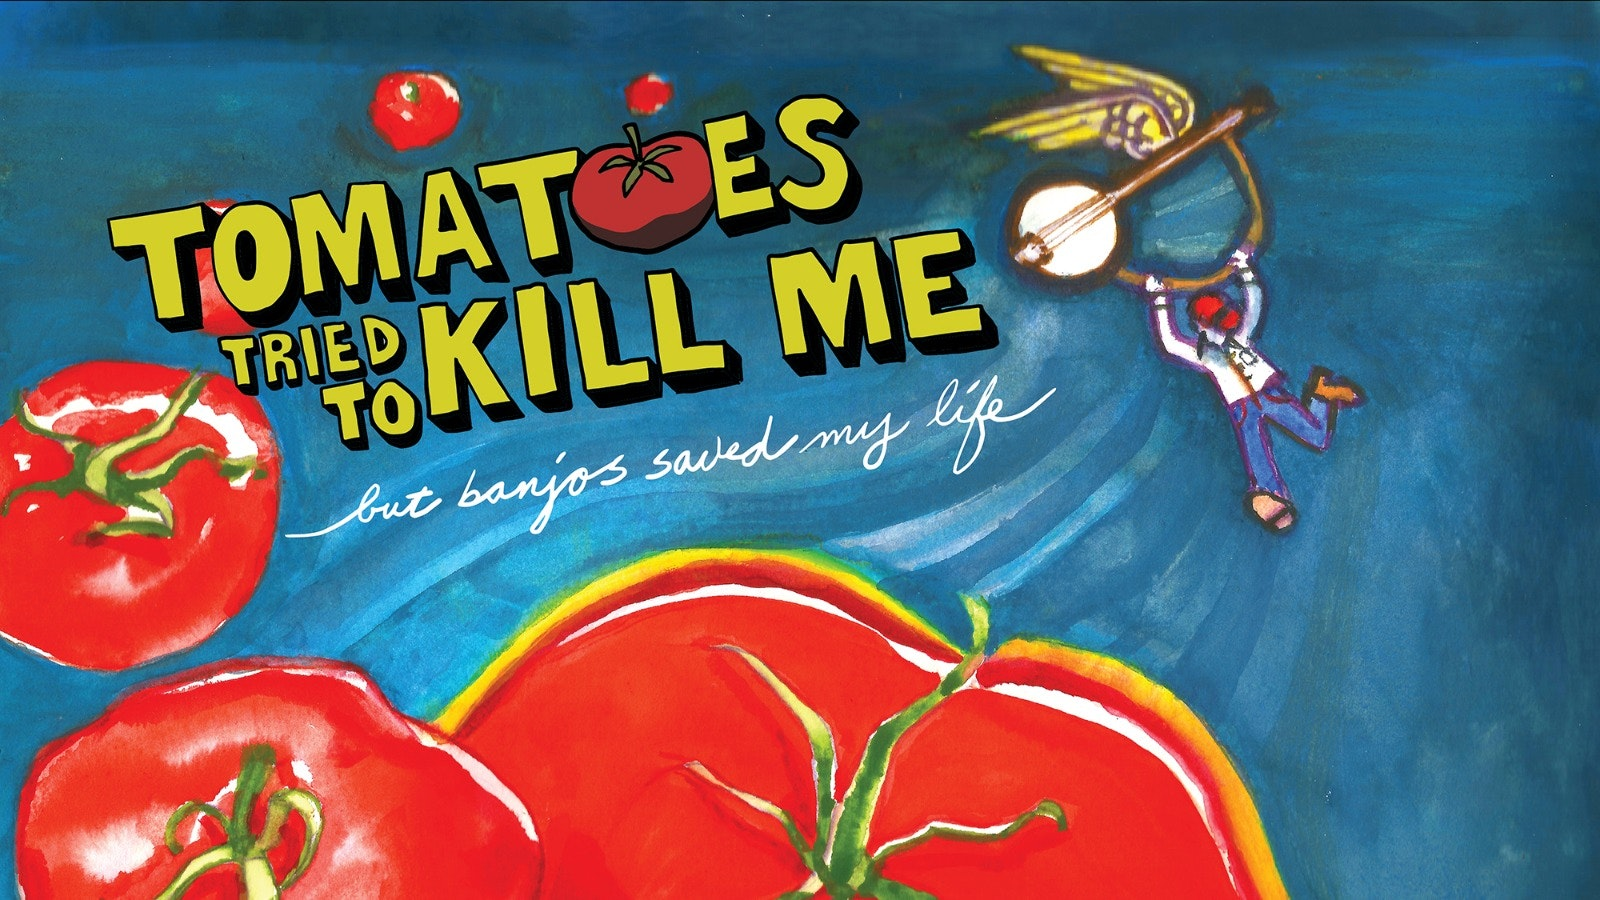 Tomatoes Tried To Kill Me But Banjos Saved My Life